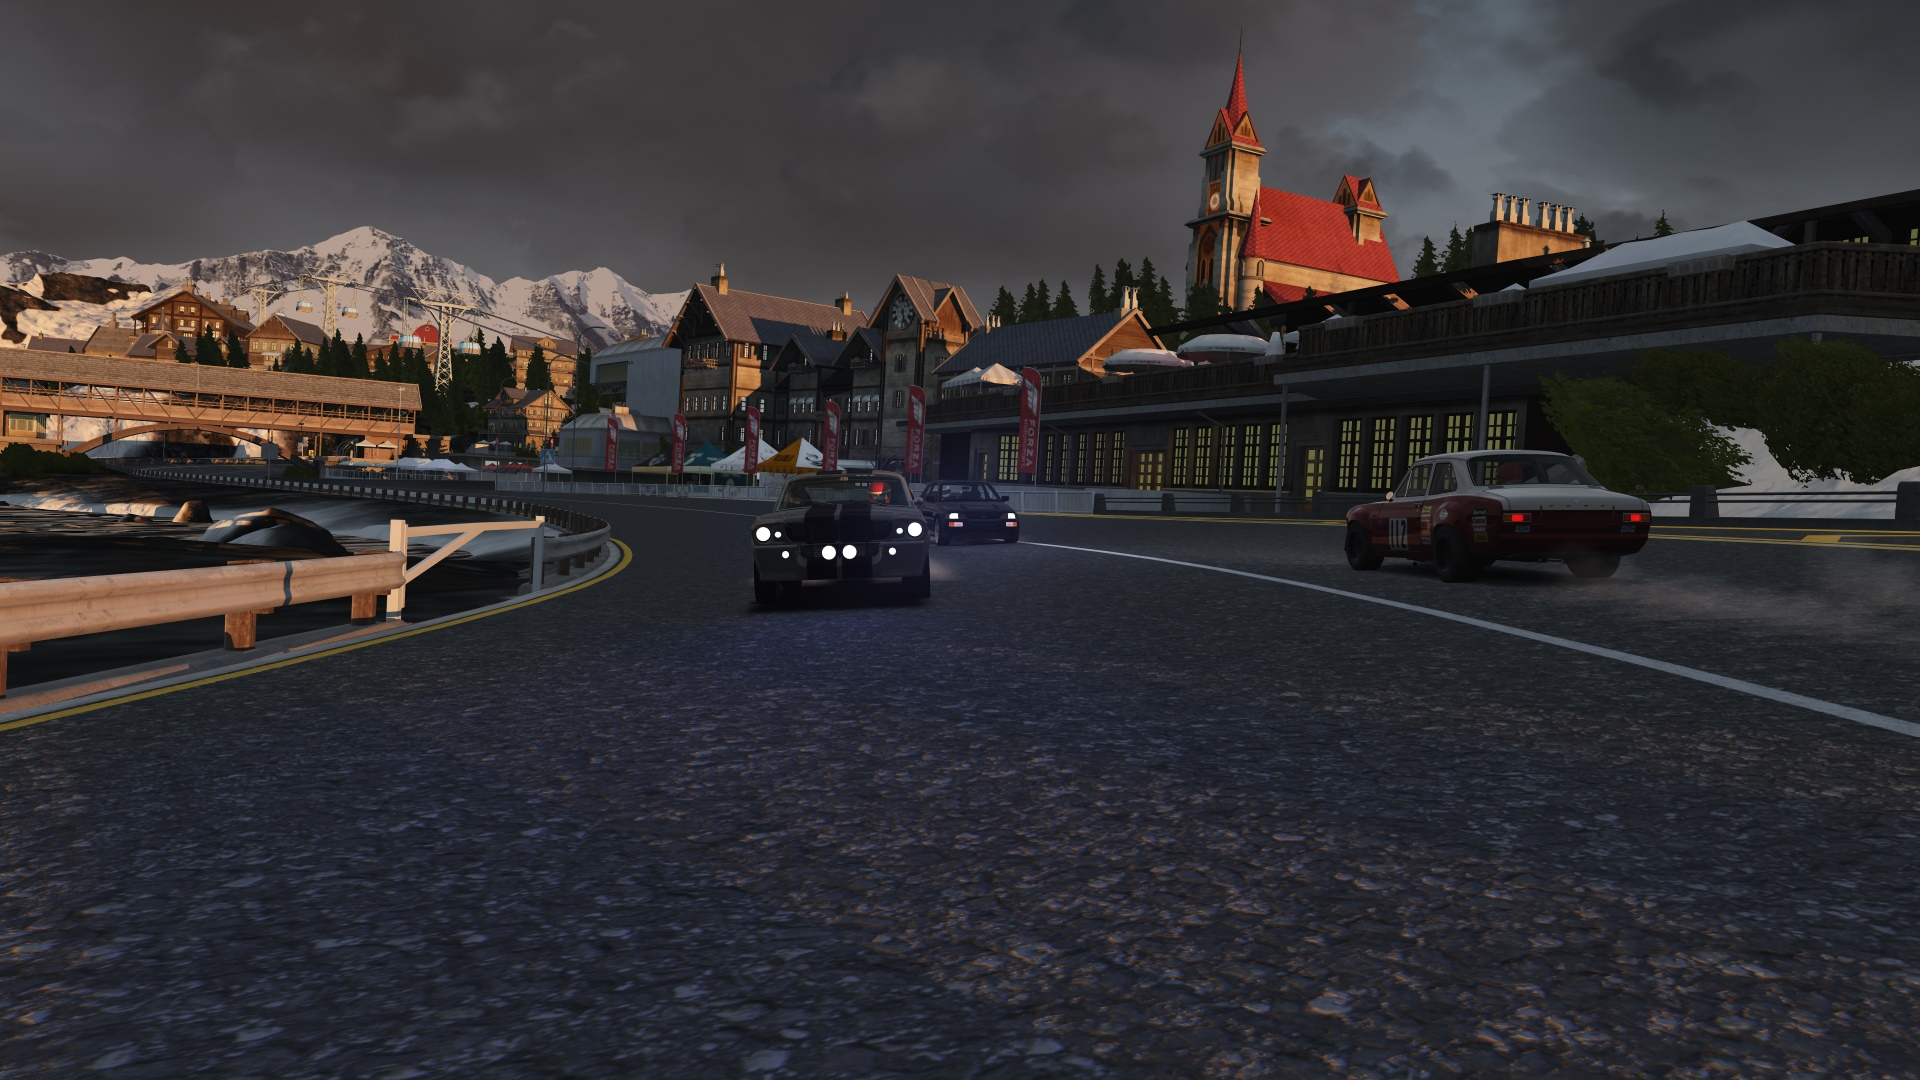 Screenshot_suzuki_liana_alps_20-10-119-10-1-44.jpg